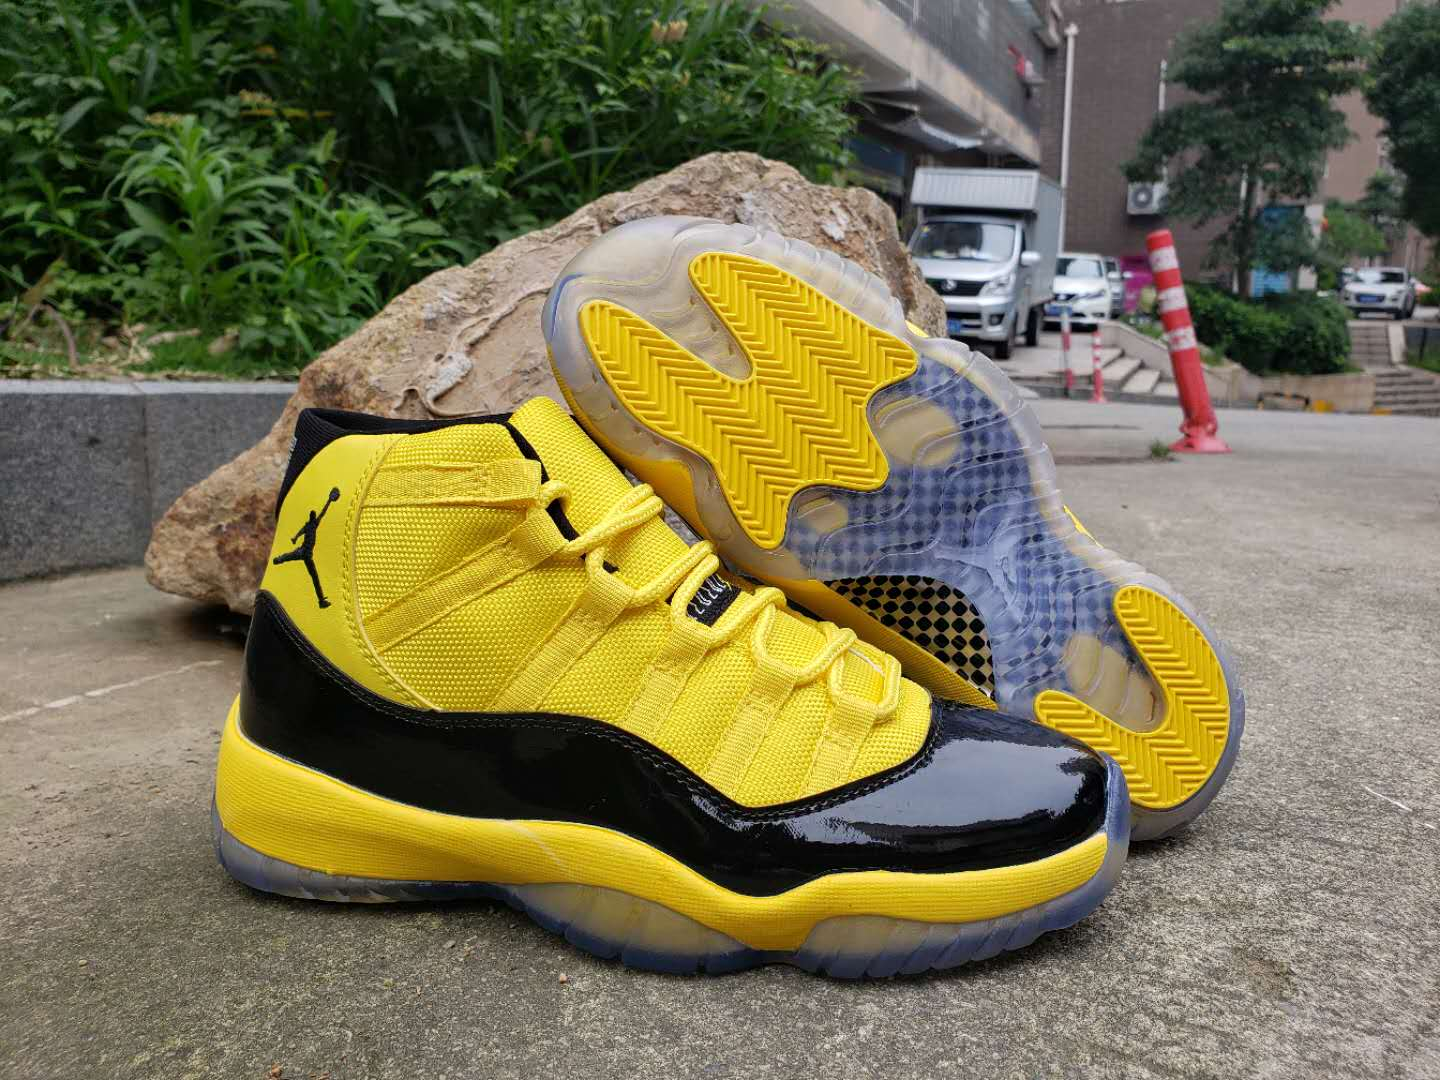 Air Jordan 11 High Bumblebee Yellow Black Shoes